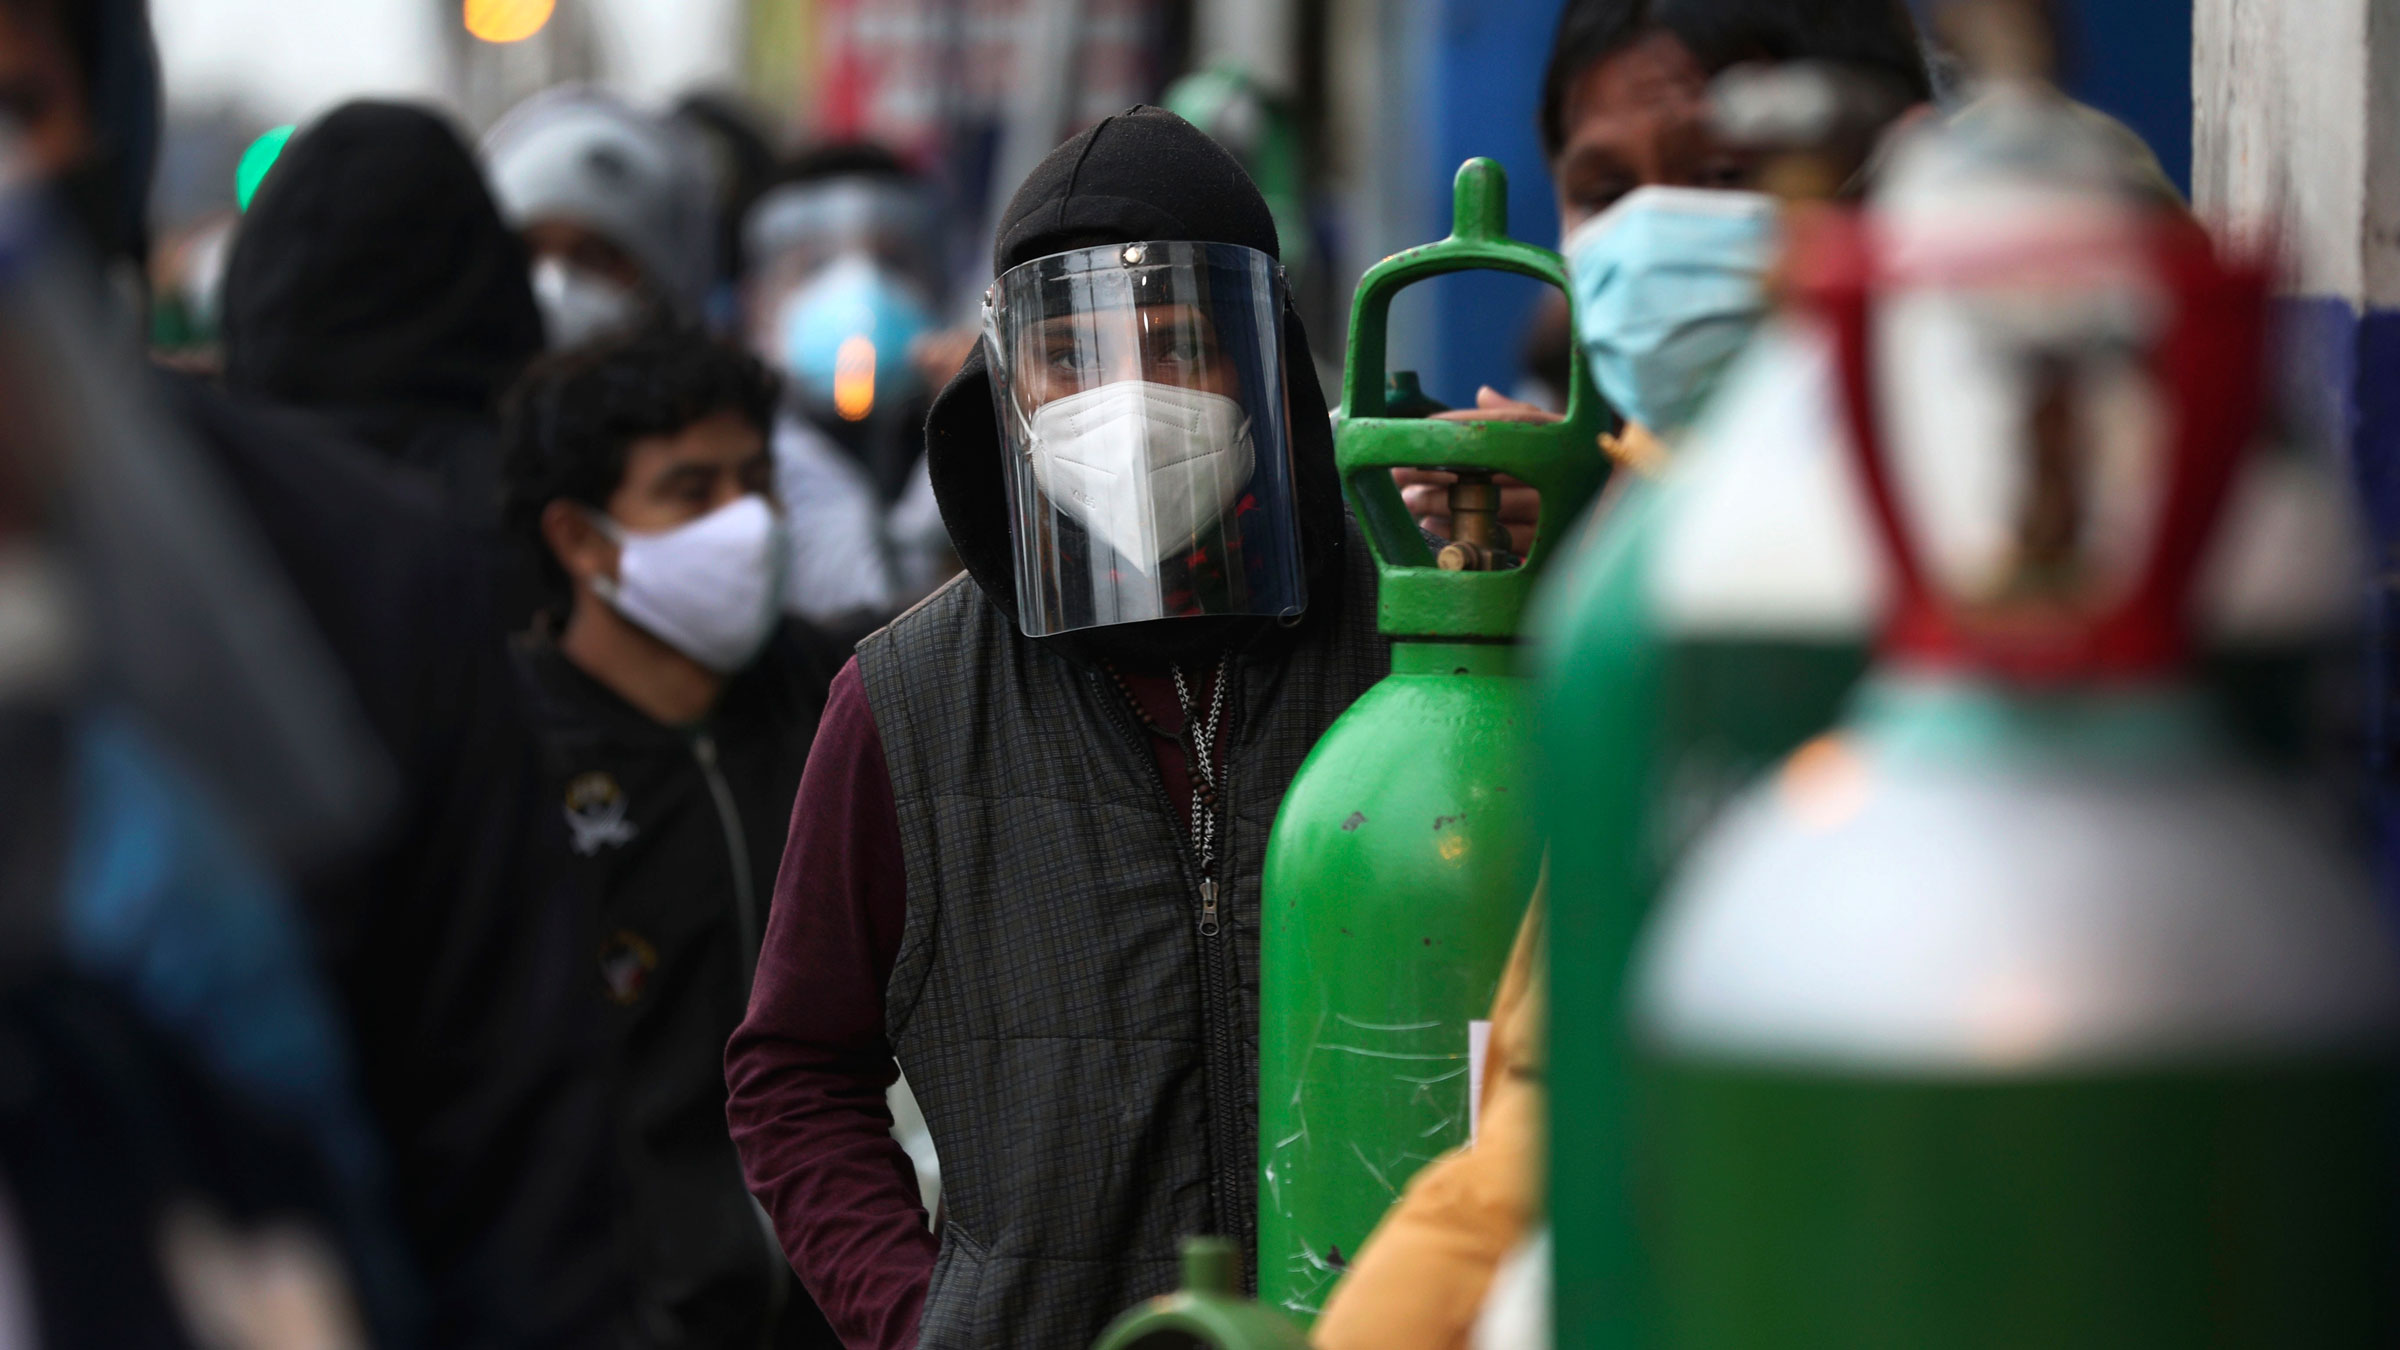 People in Lima, Peru, wait in line to refill oxygen tanks on August 3.